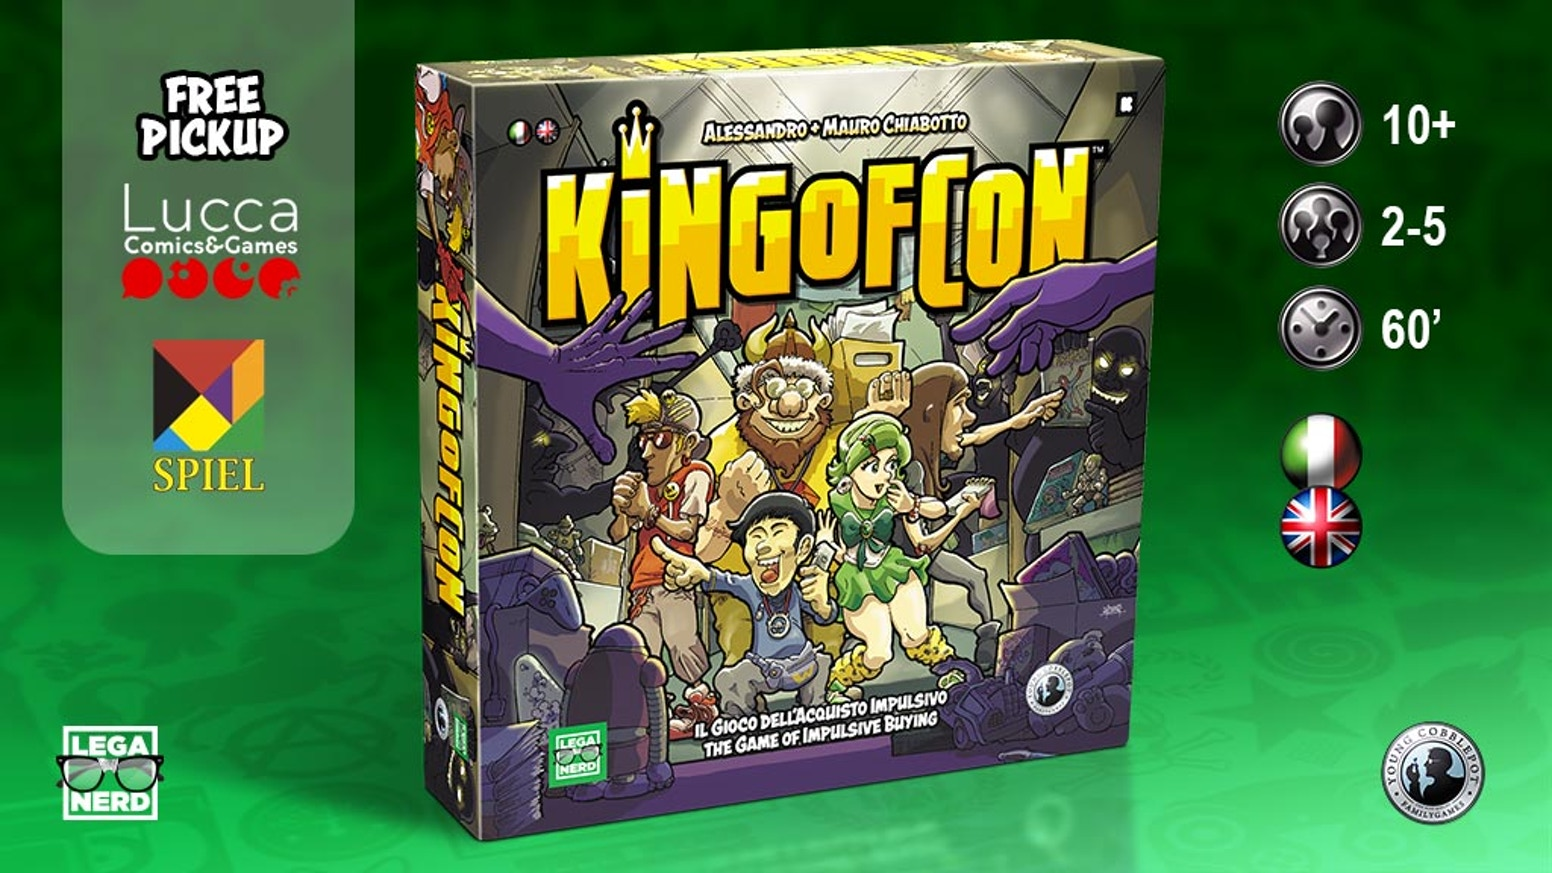 A board game for 2/5 geeky nerds feeding the monkey of impulsive buying!